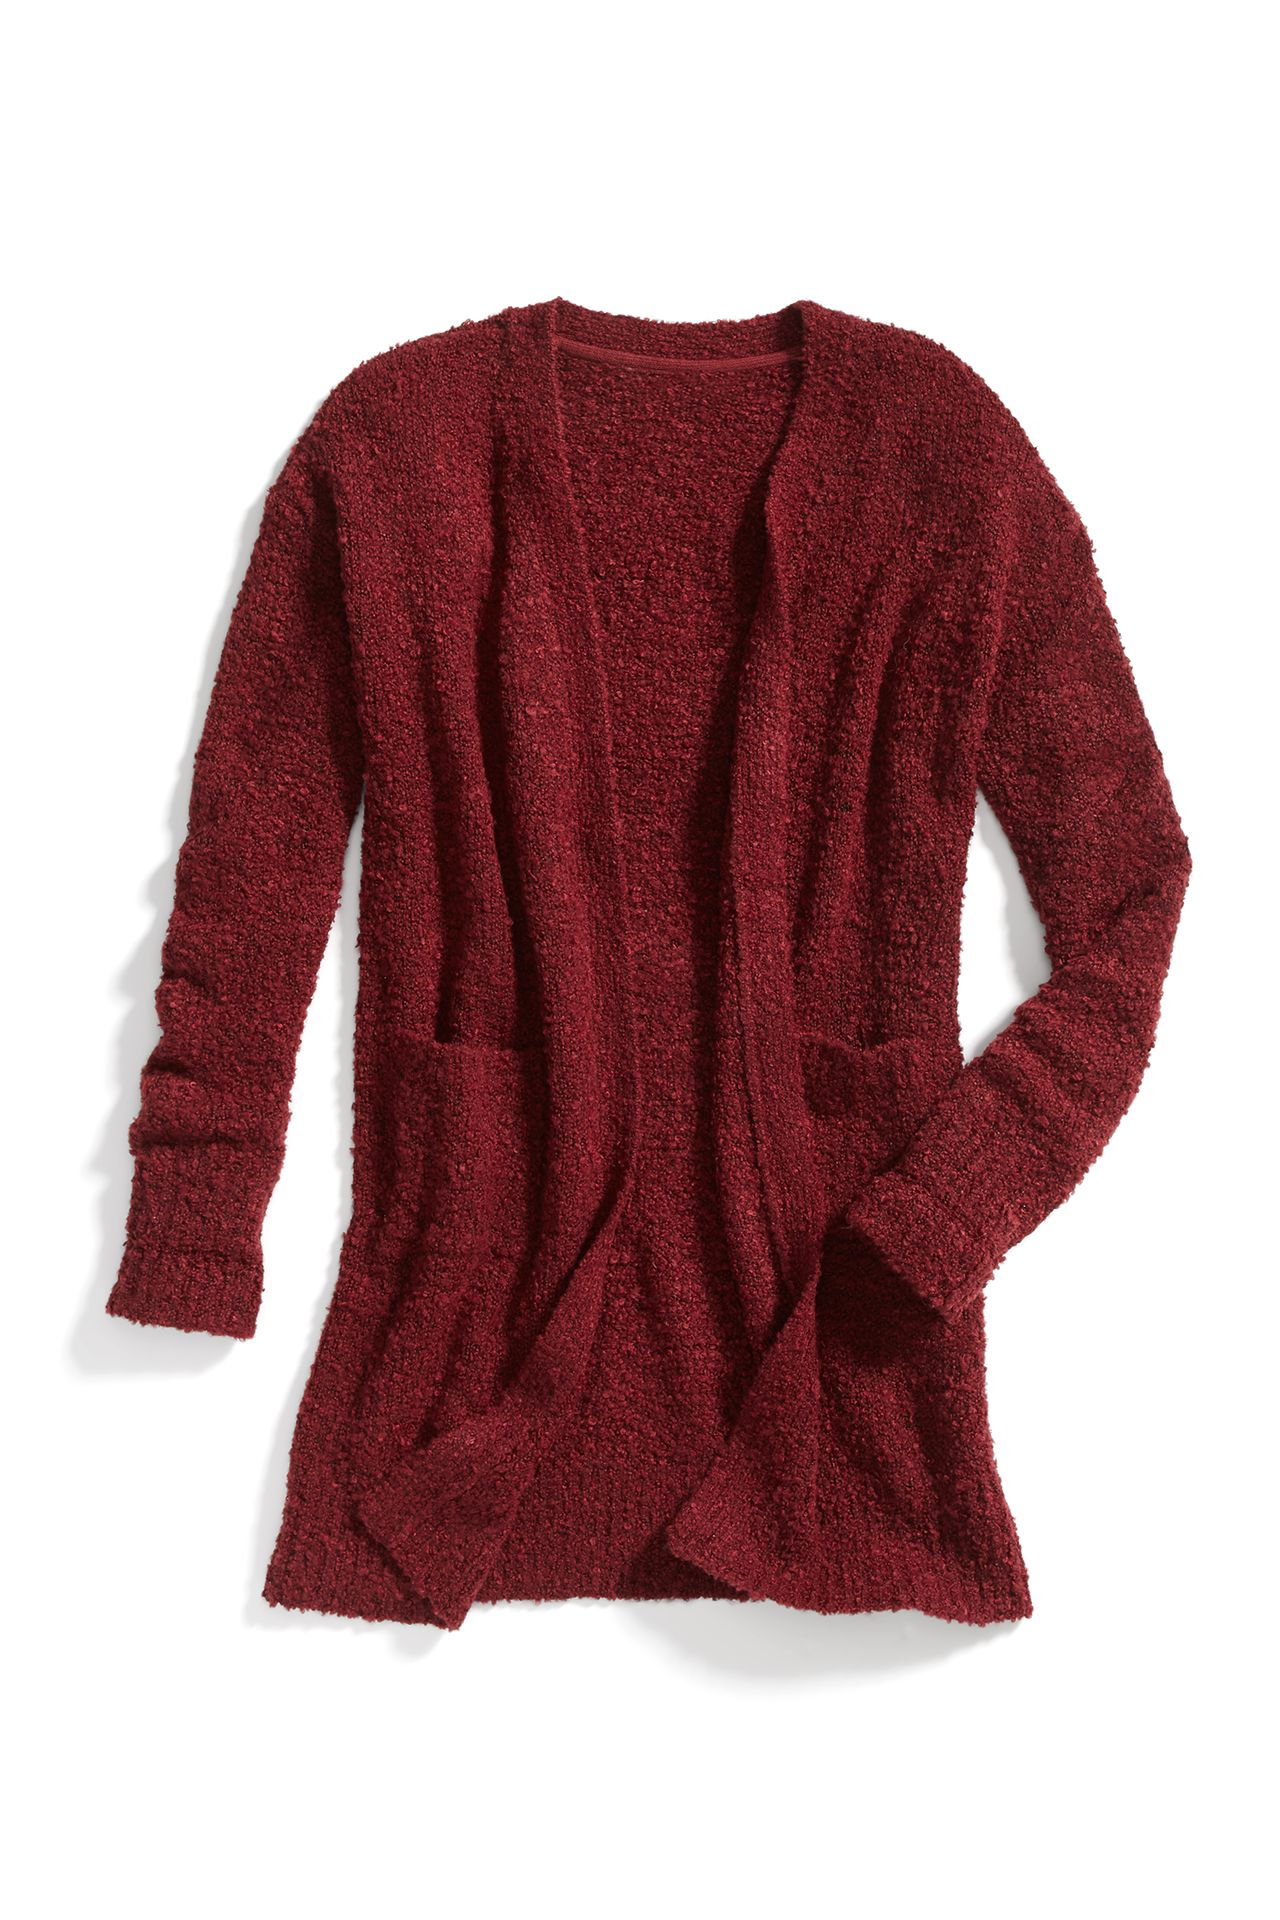 Stitch Fix Winter Essentials: An open-front cardigan is the perfect work or lounge layer. Throw it on over a blouse or simple tee.